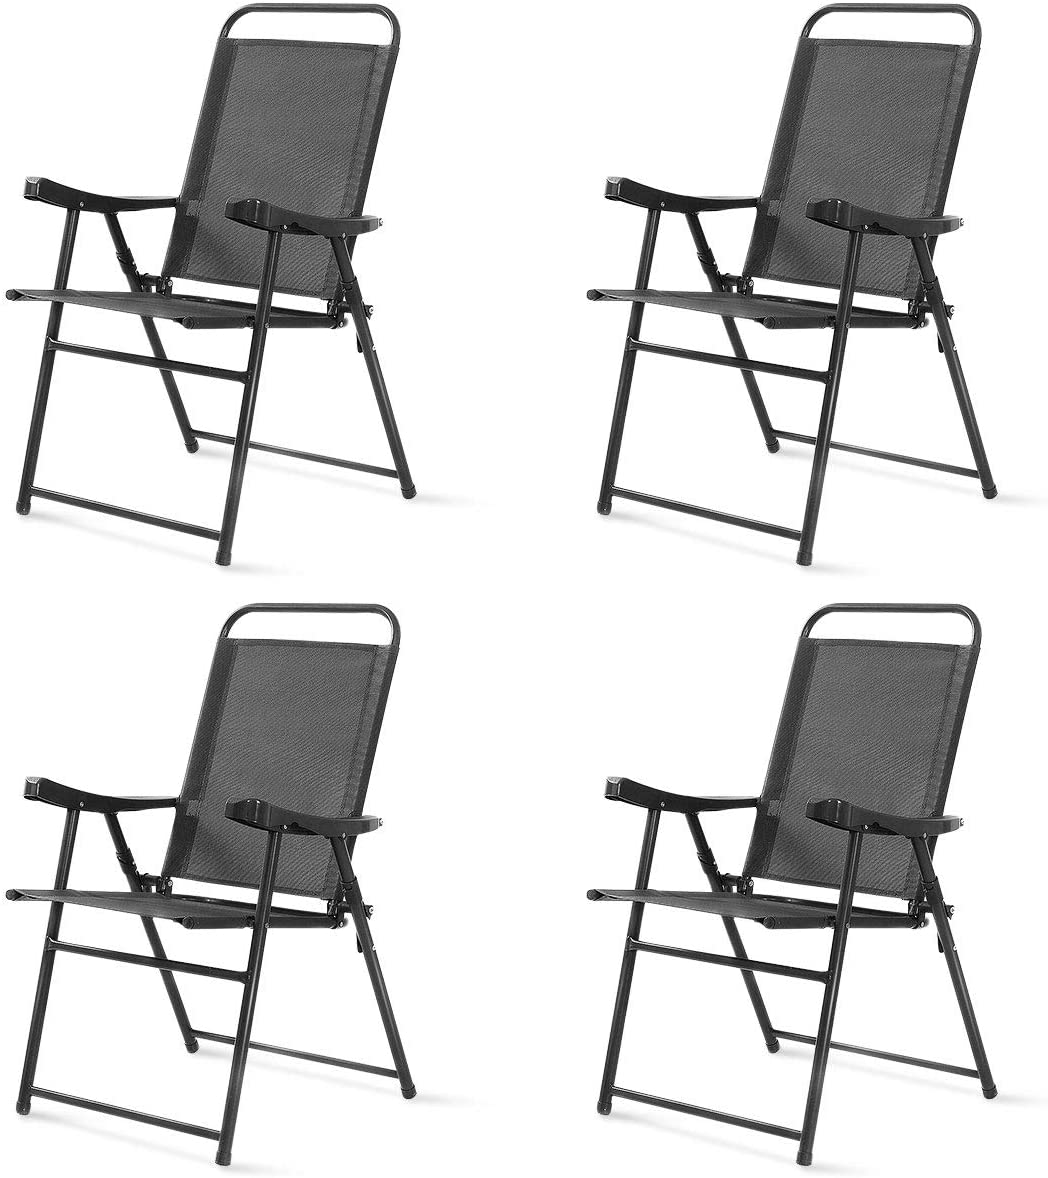 Safstar Folding Sling Chairs, Patio Furniture Chair Set with Armrest for Lawn Garden Dark Gray 4PCS